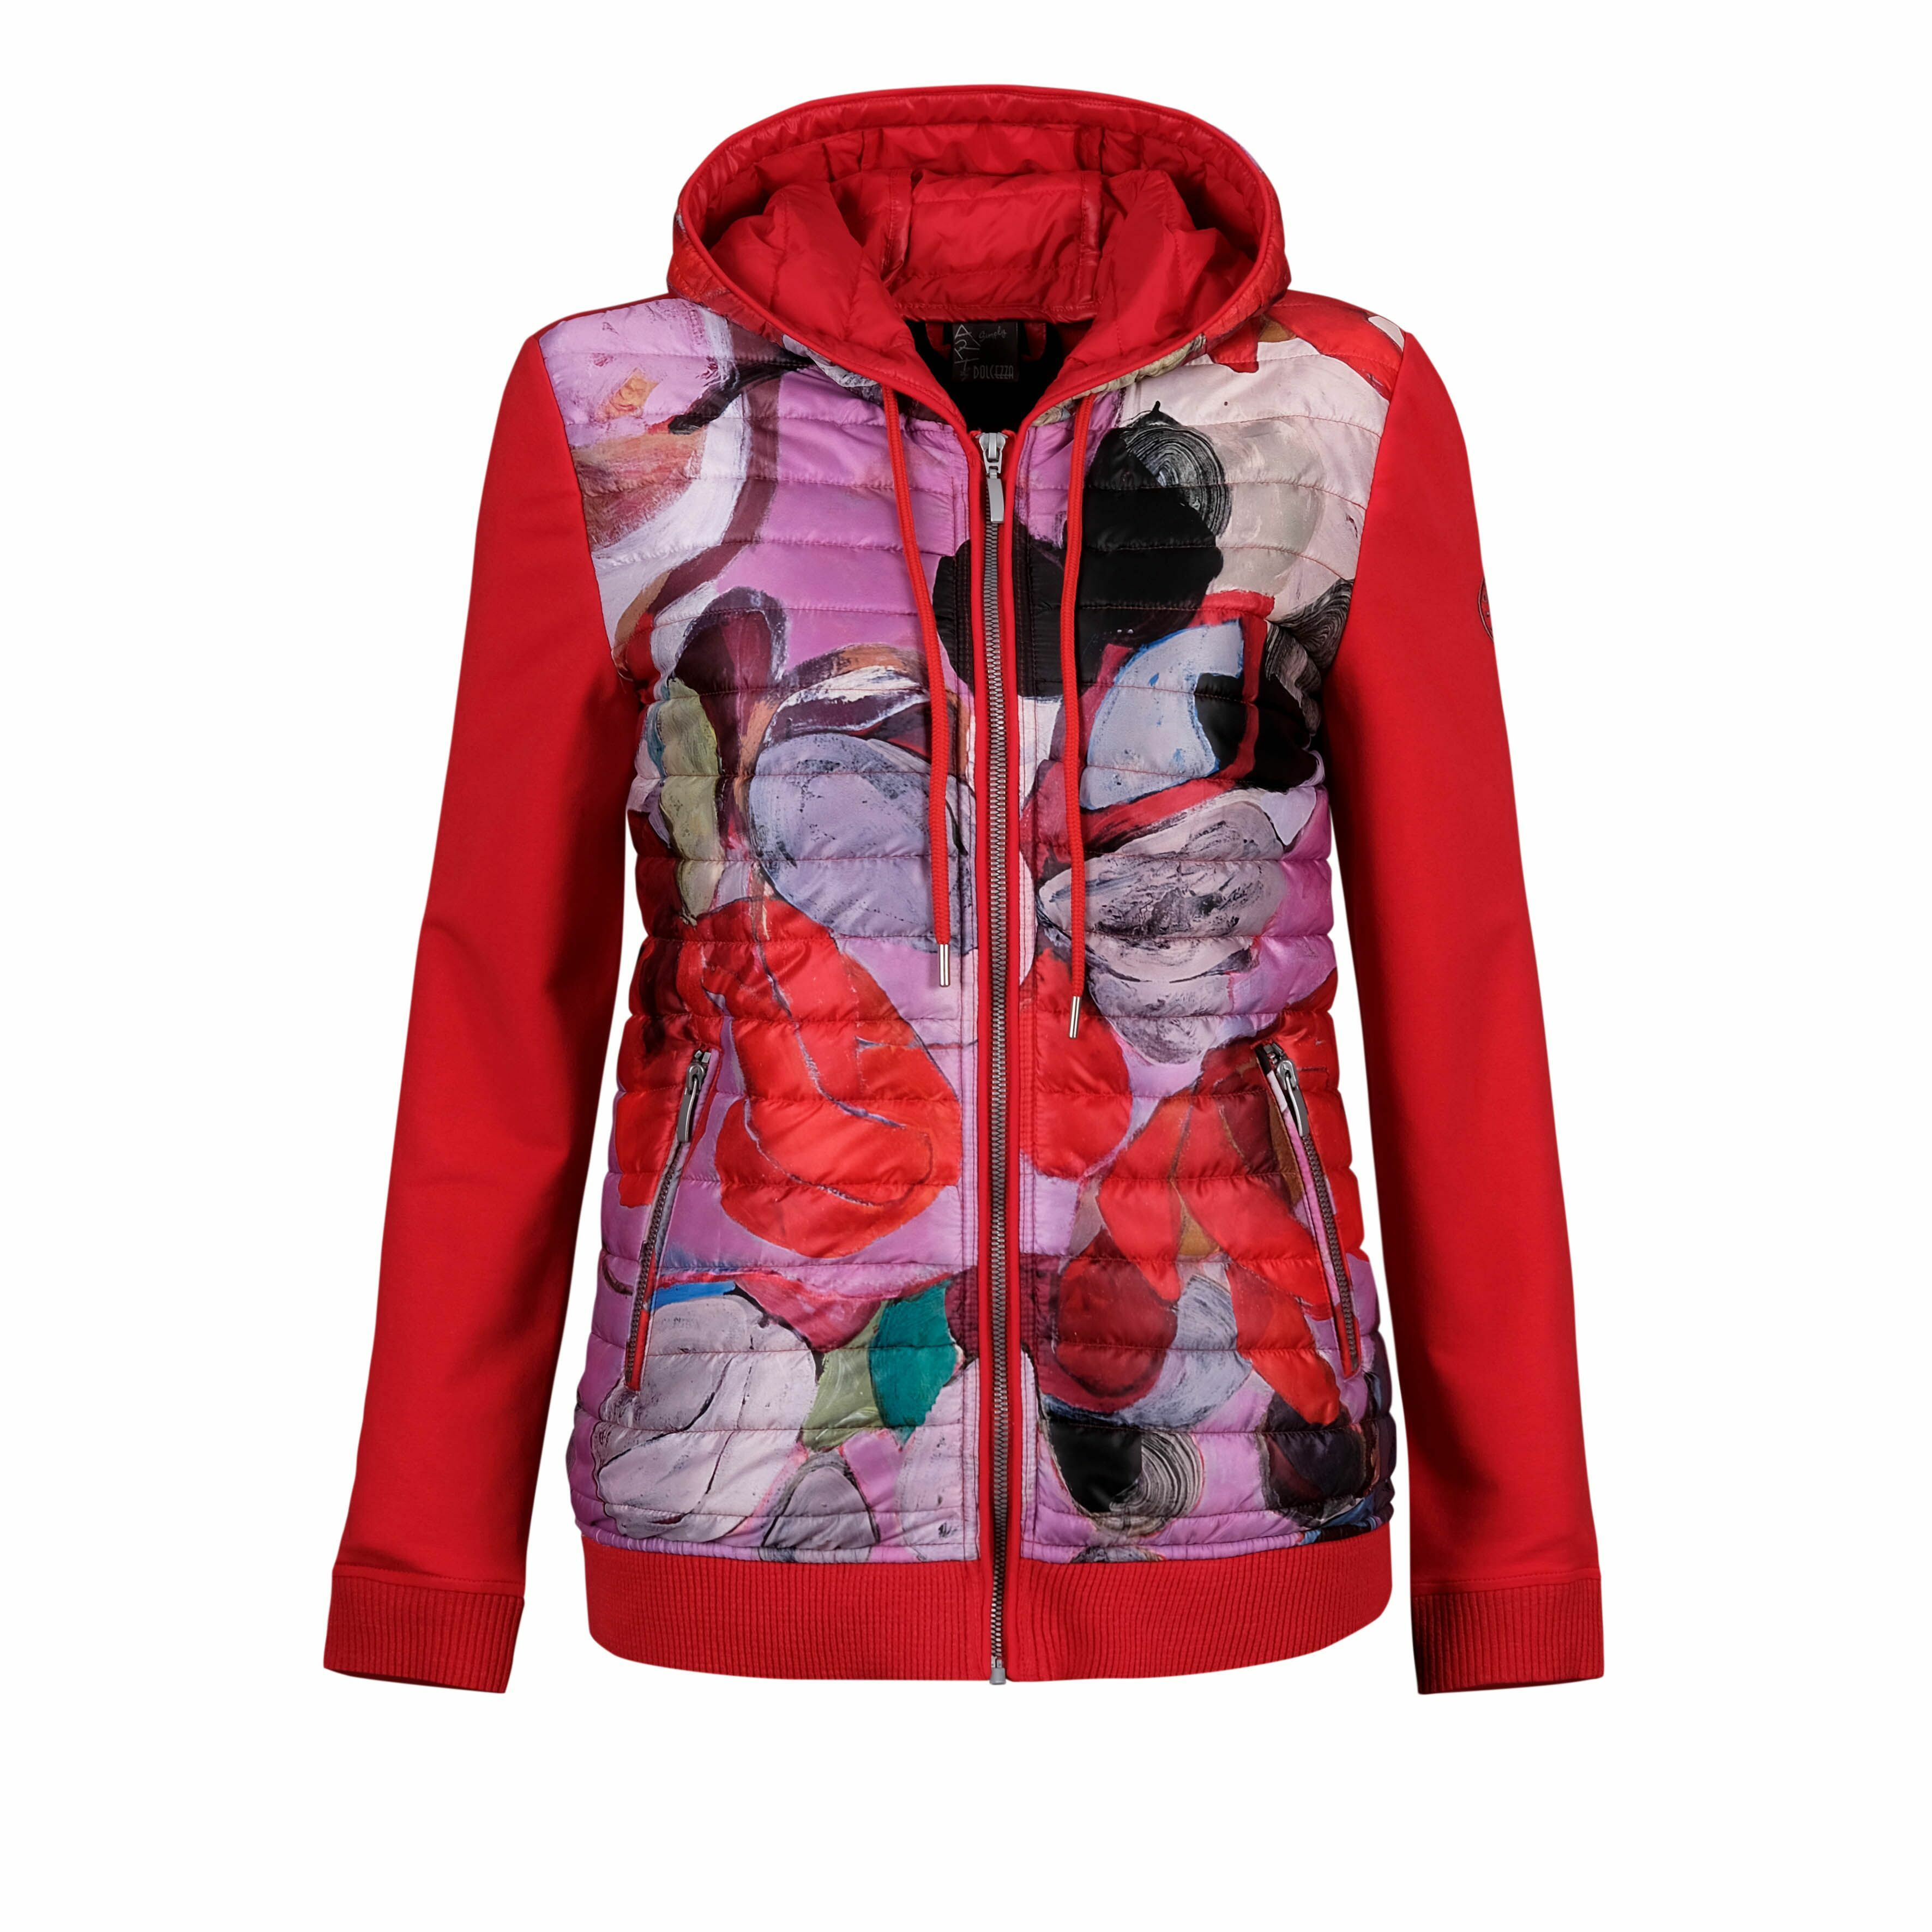 Simply Art Dolcezza: Blooms In Rouge Abstract Art Hybrid Jacket DOLCEZZA_SIMPLYART_20811